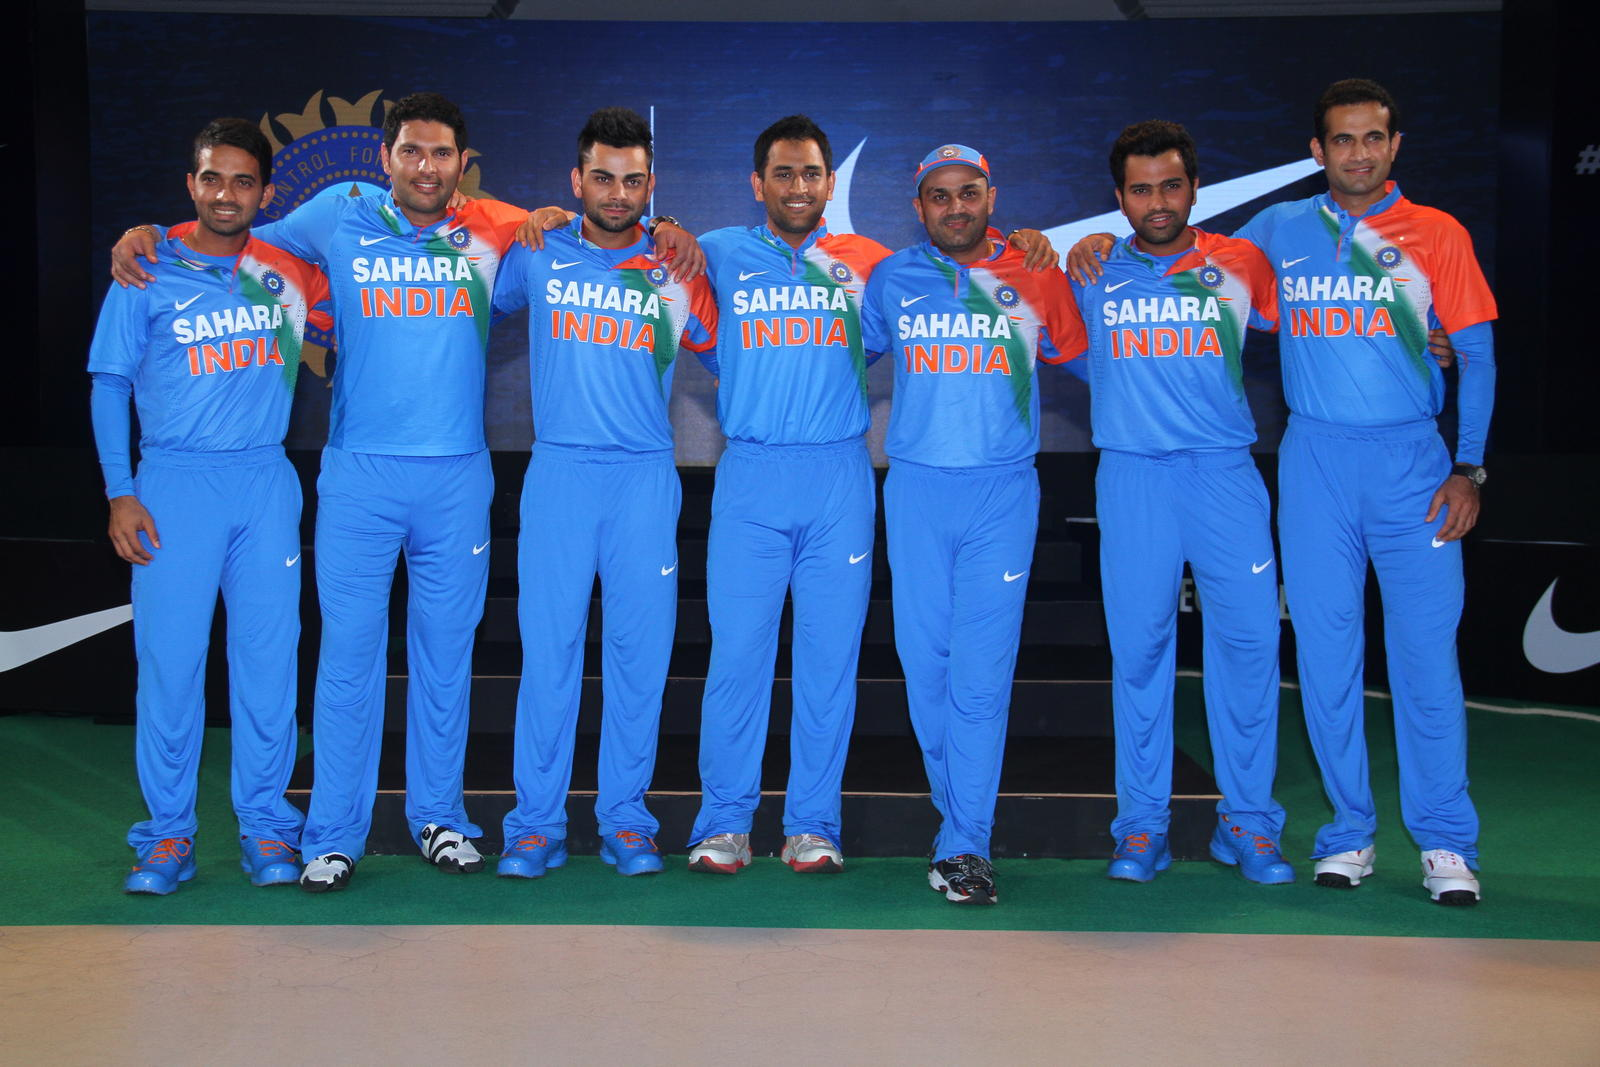 Miraculous Nike News Nike Unveils Innovative T20 Cricket Kit For Team India Hairstyles For Men Maxibearus